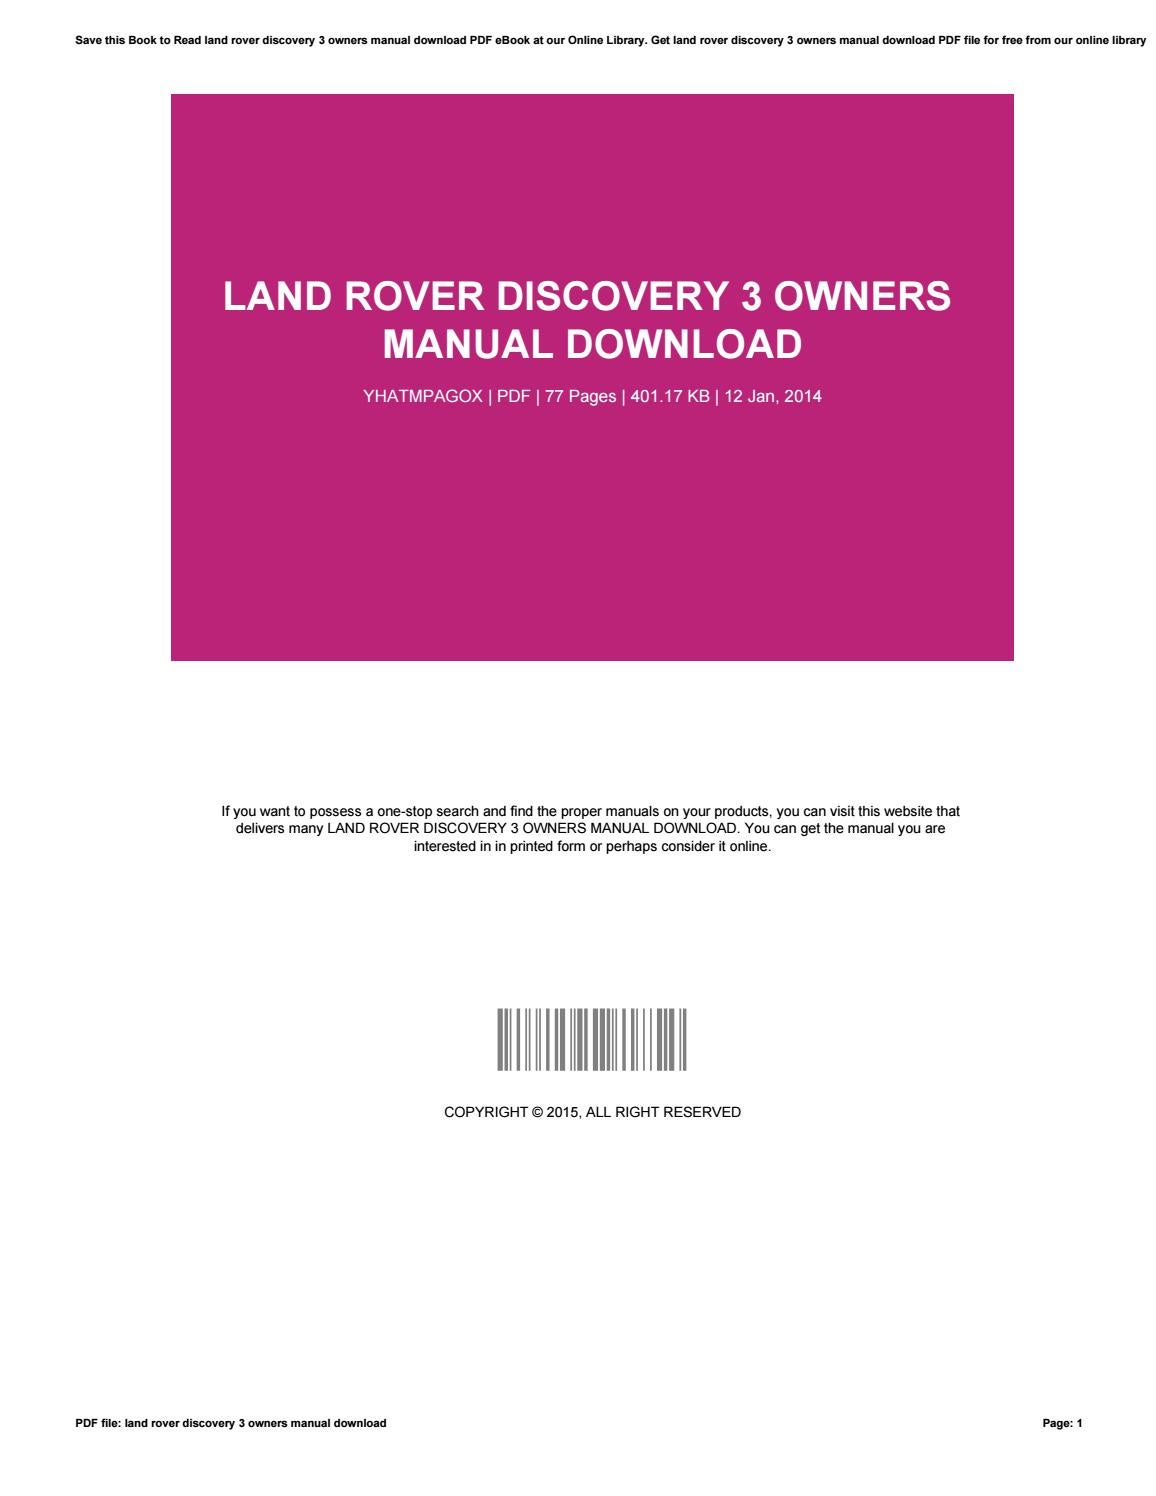 Land rover discovery 3 owners manual download by successlocation94 - issuu